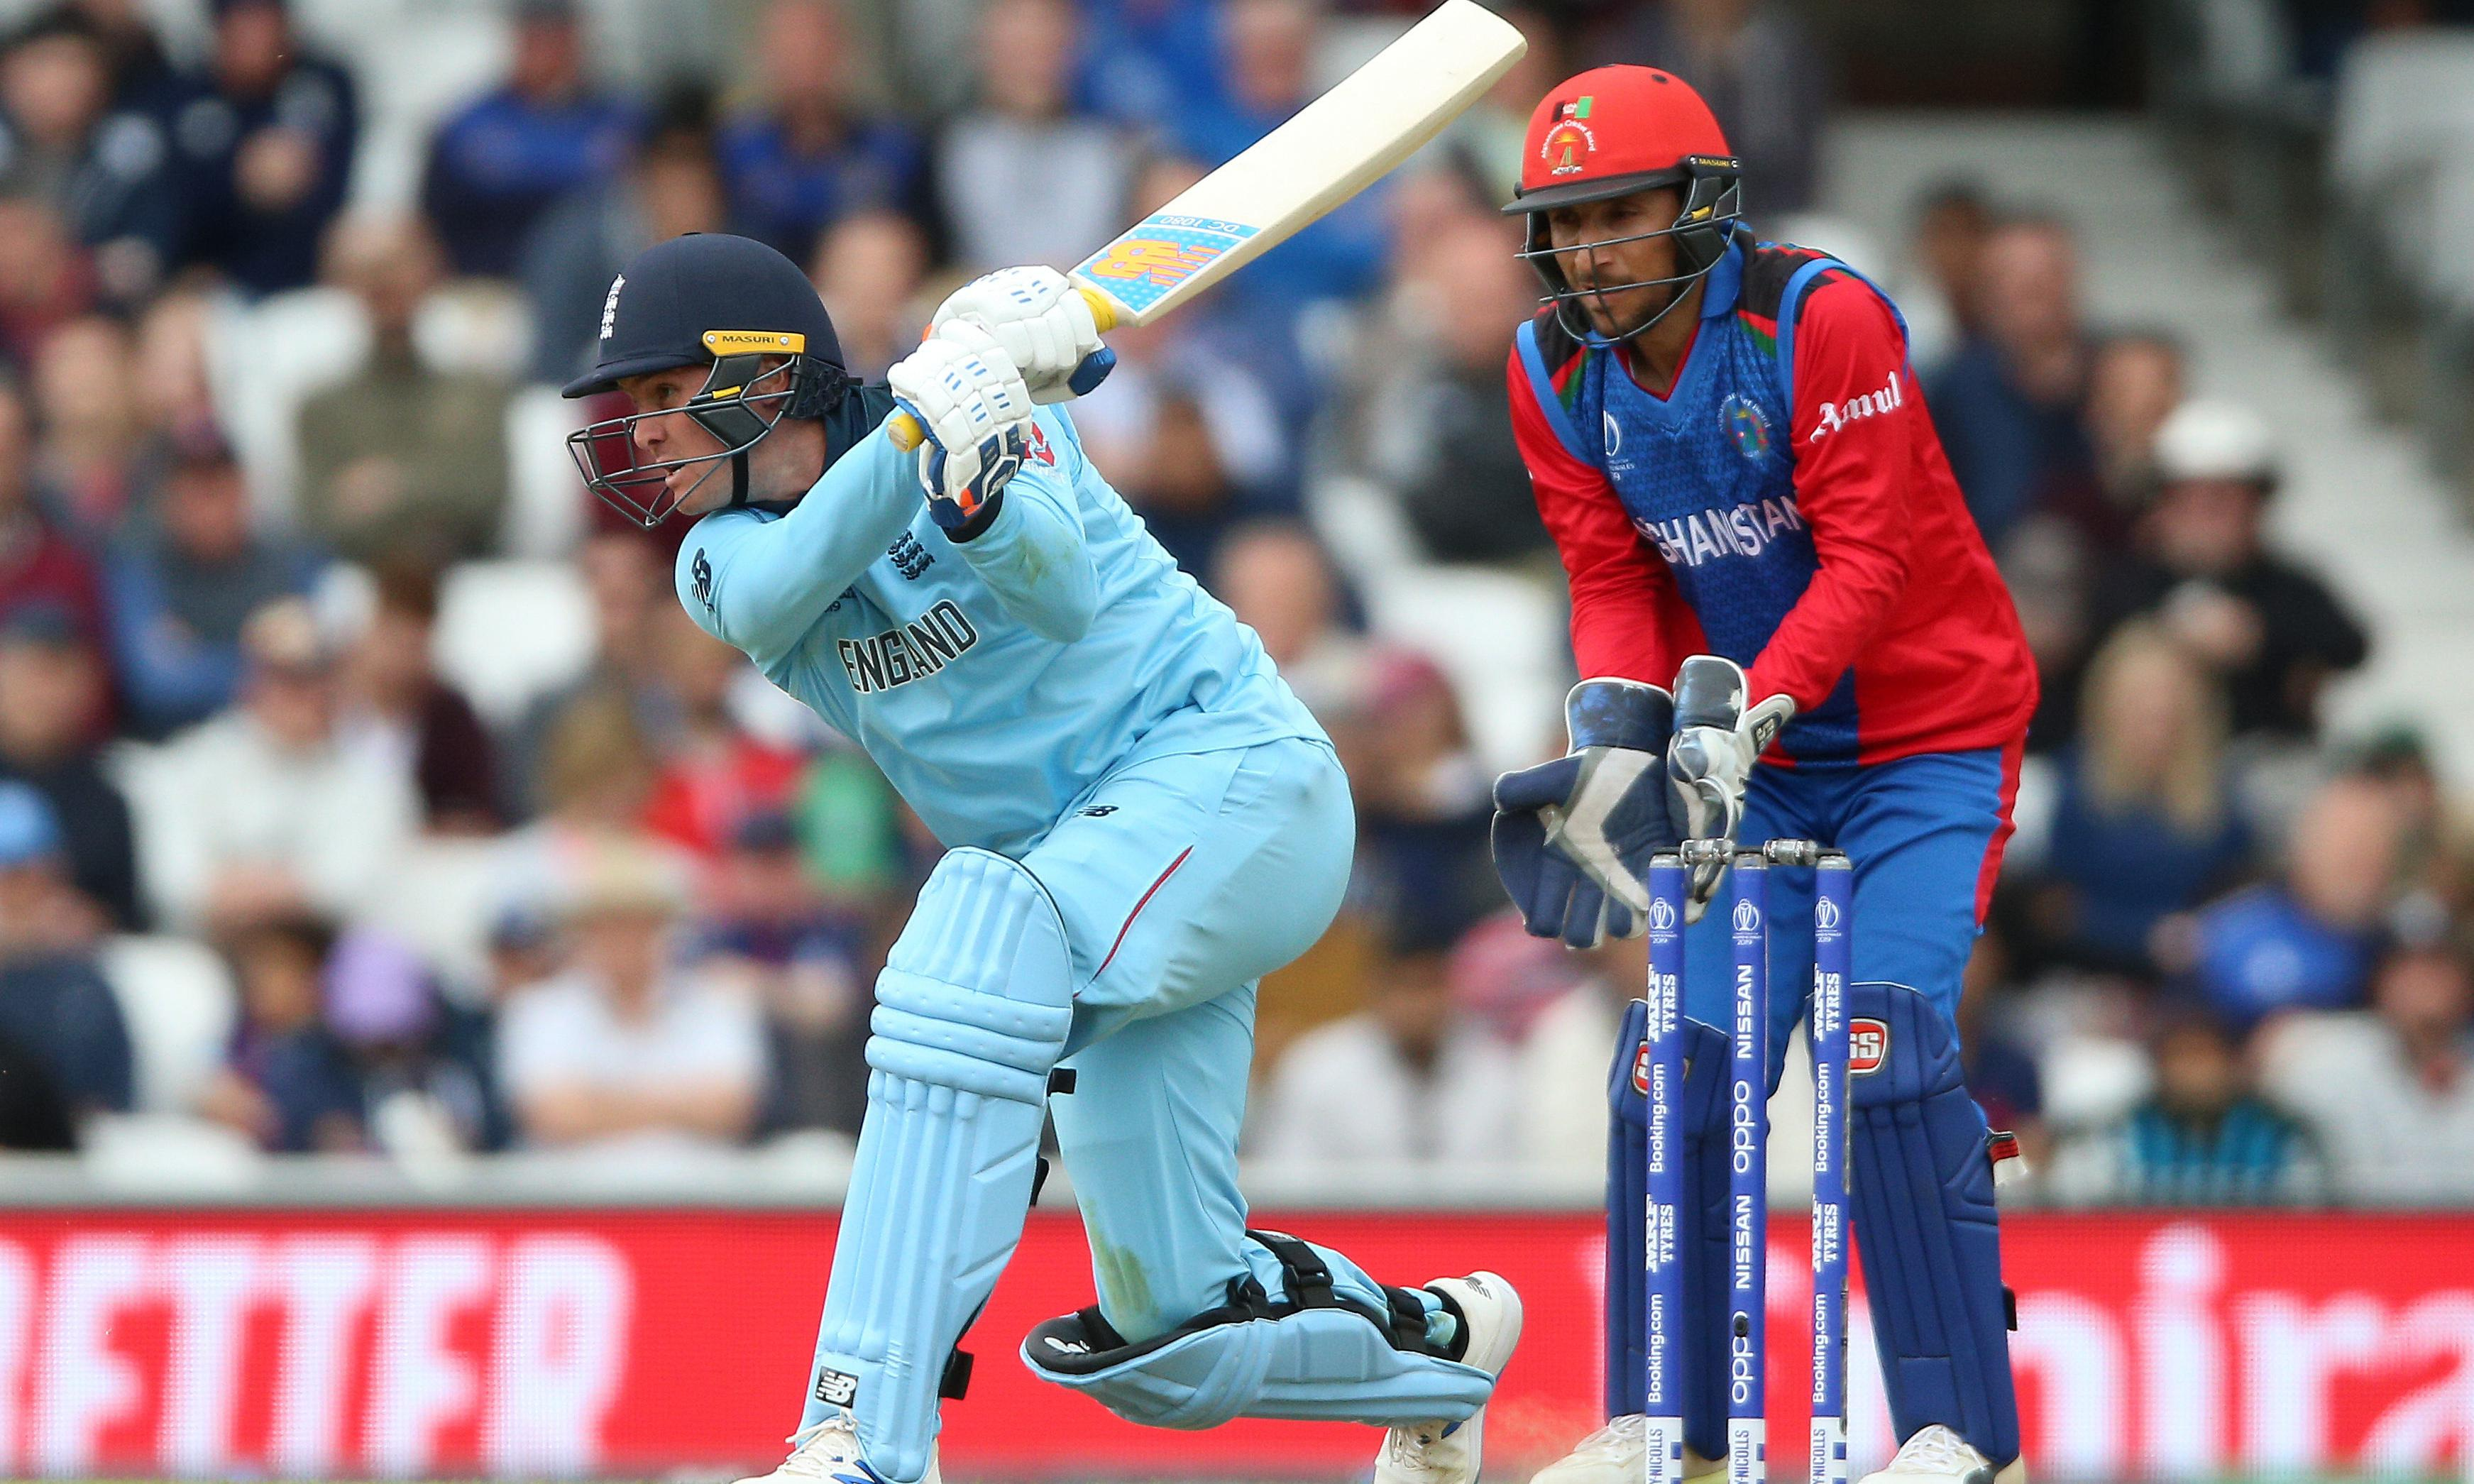 England thrash Afghanistan by nine wickets in World Cup warm-up match